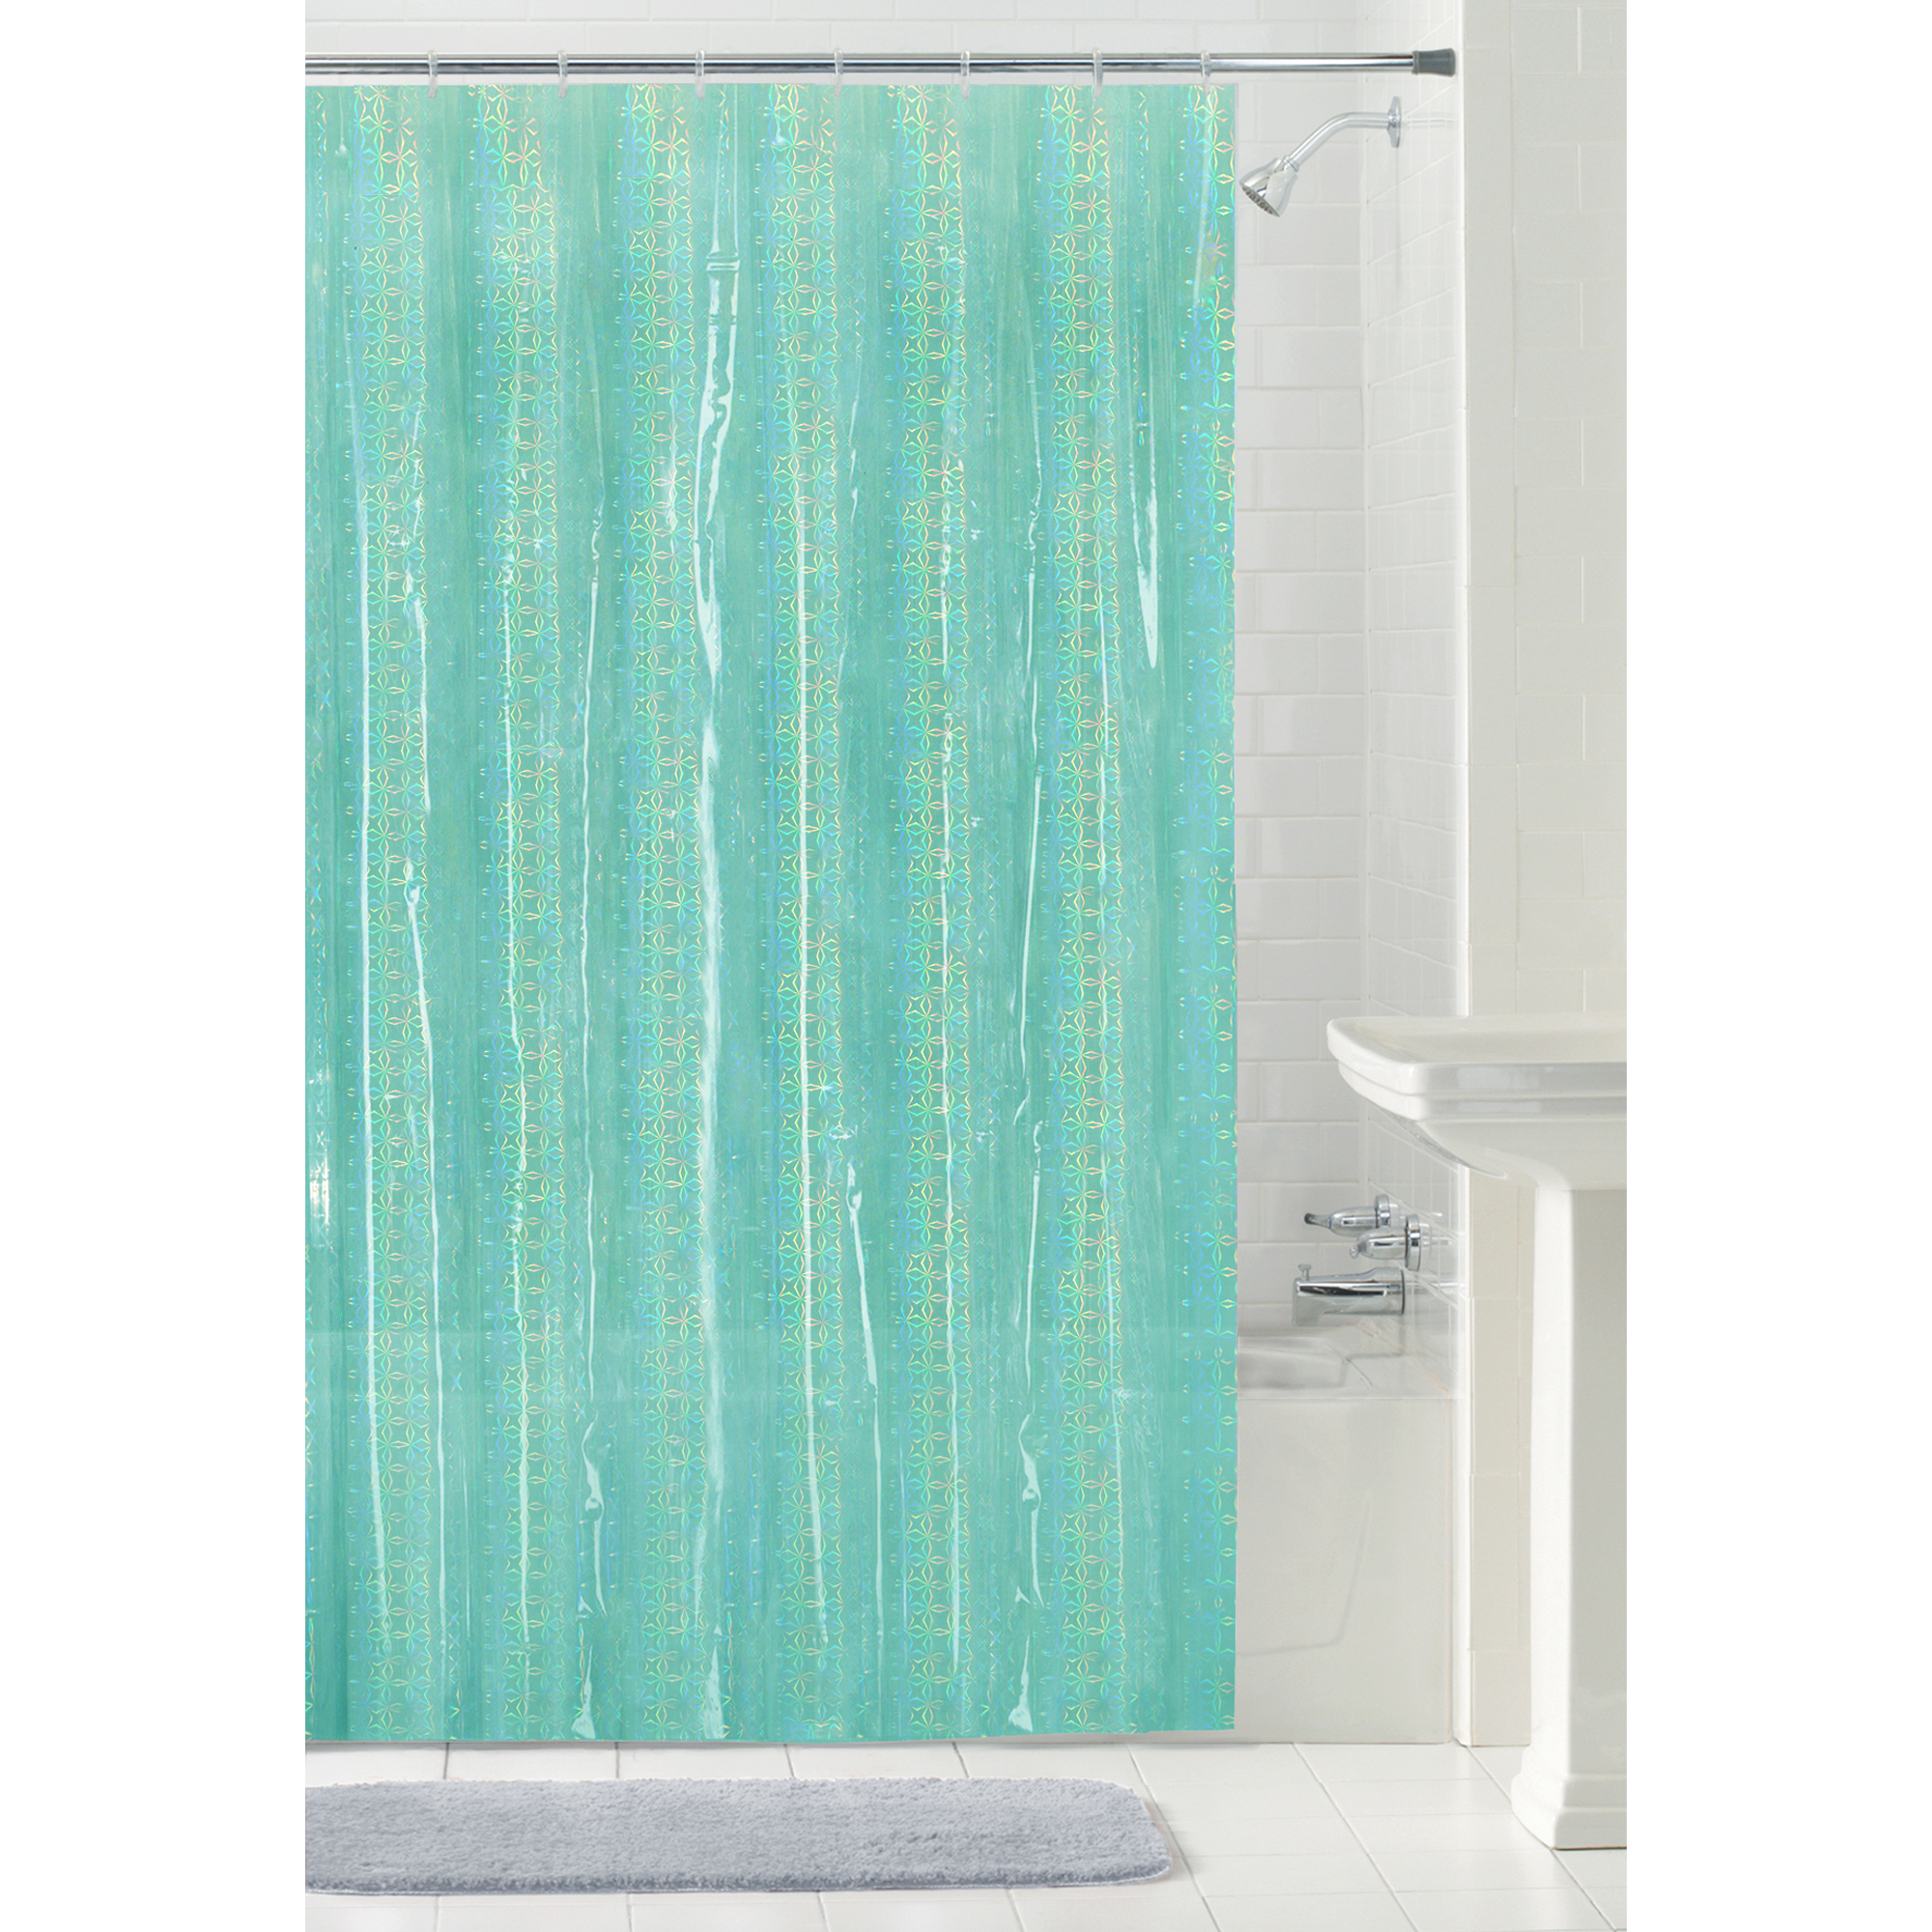 Mainstays Luminous PEVA Shower Curtain or Liner, 70 inch x 84 inch, Aqua